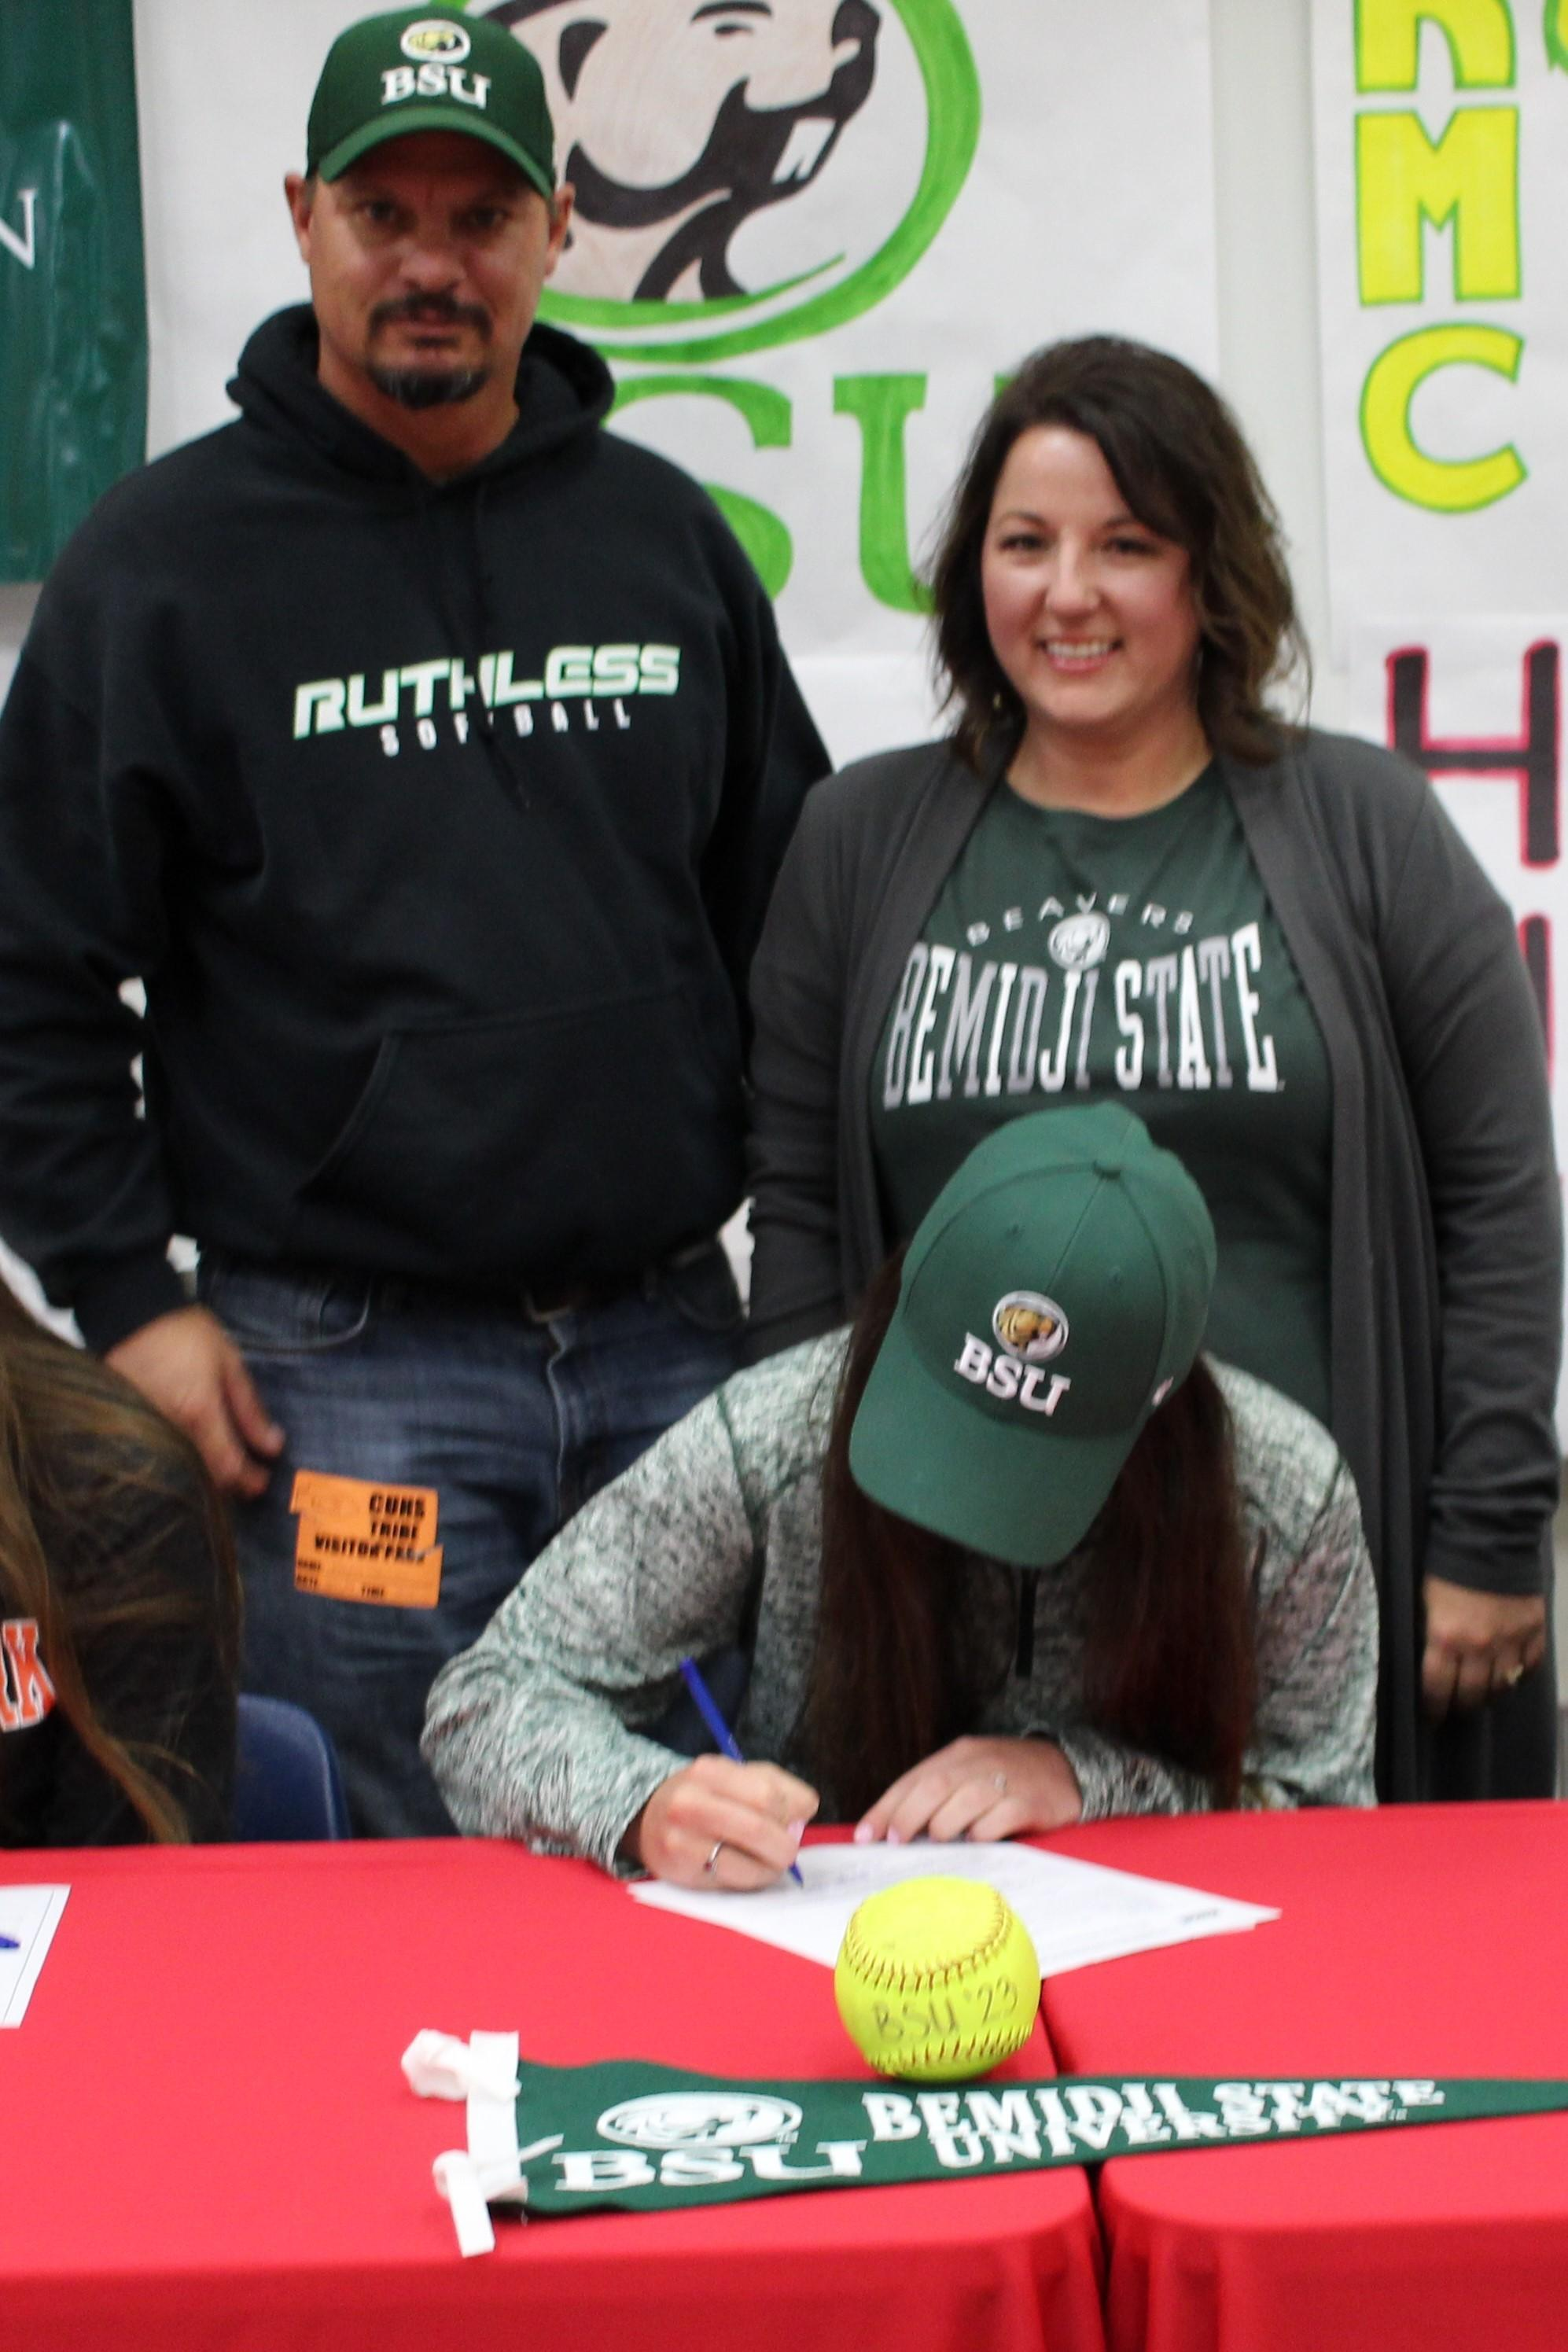 Morgan Sewell signs her National Letter of Intent to Attend Bemidji State University in Bemidji, Minnesota to play softball.